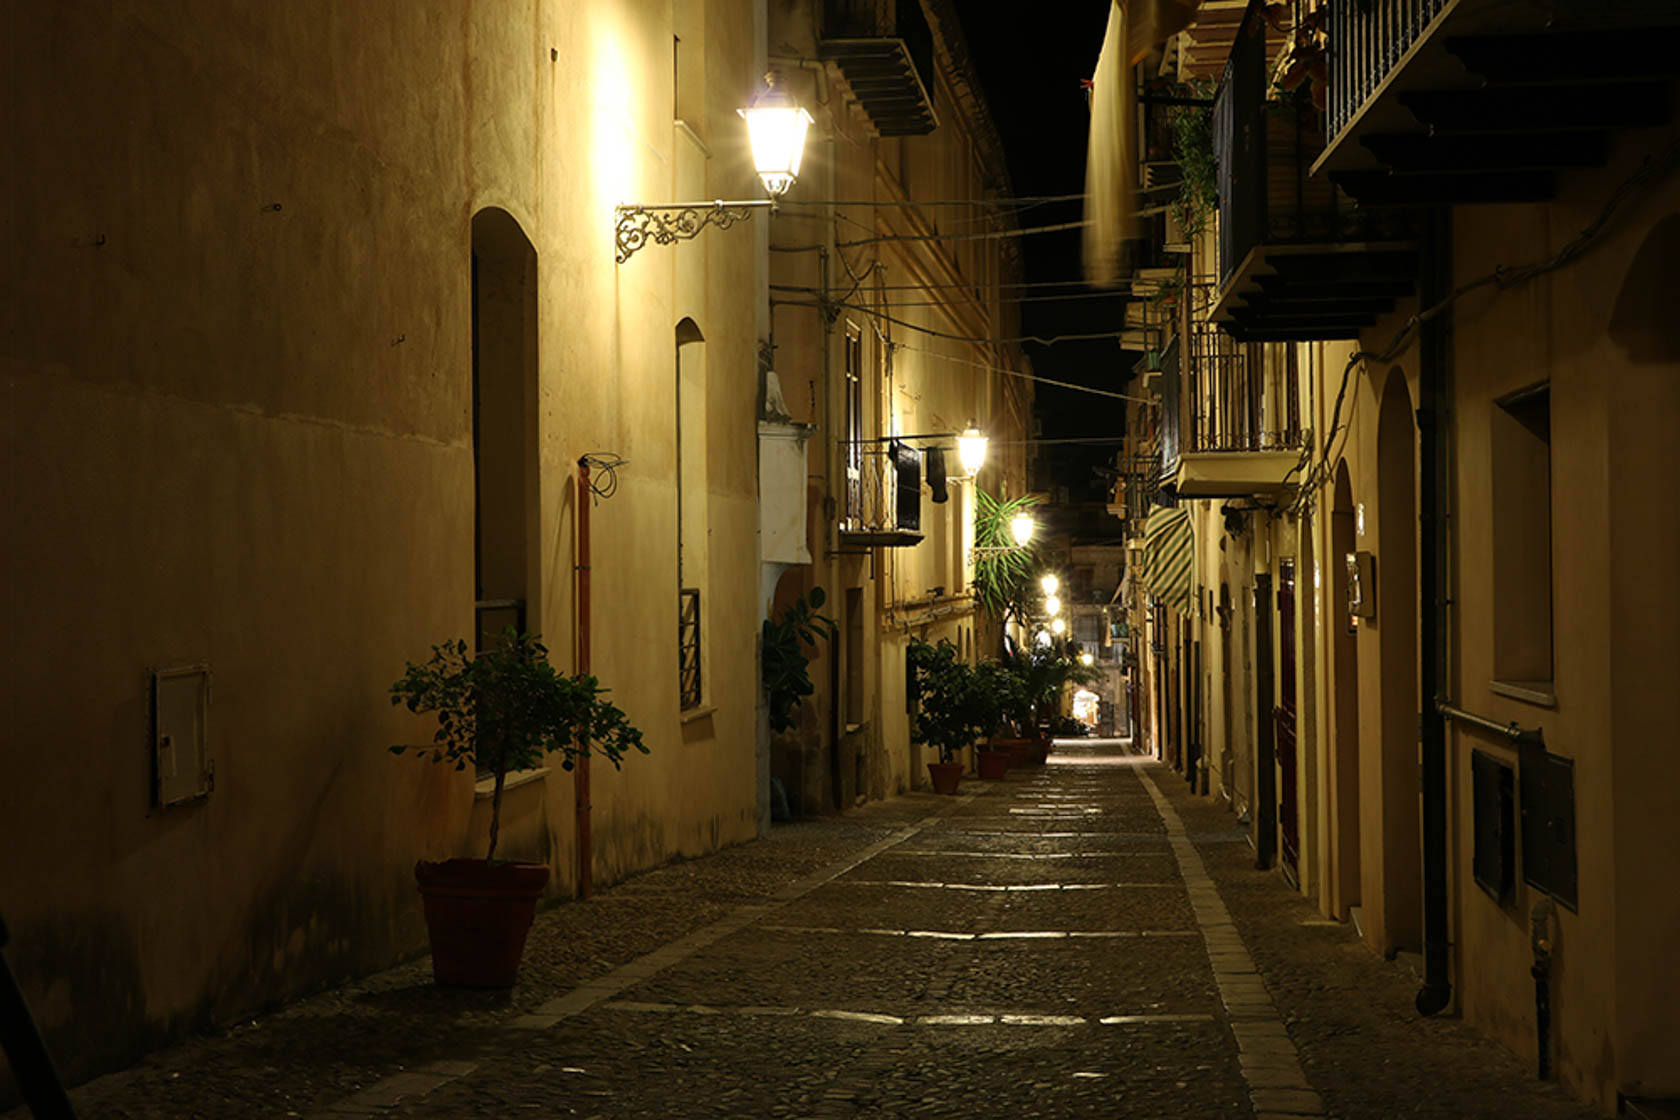 Street alleyway at night taken with the Canon EOS 750D digital SLR camera